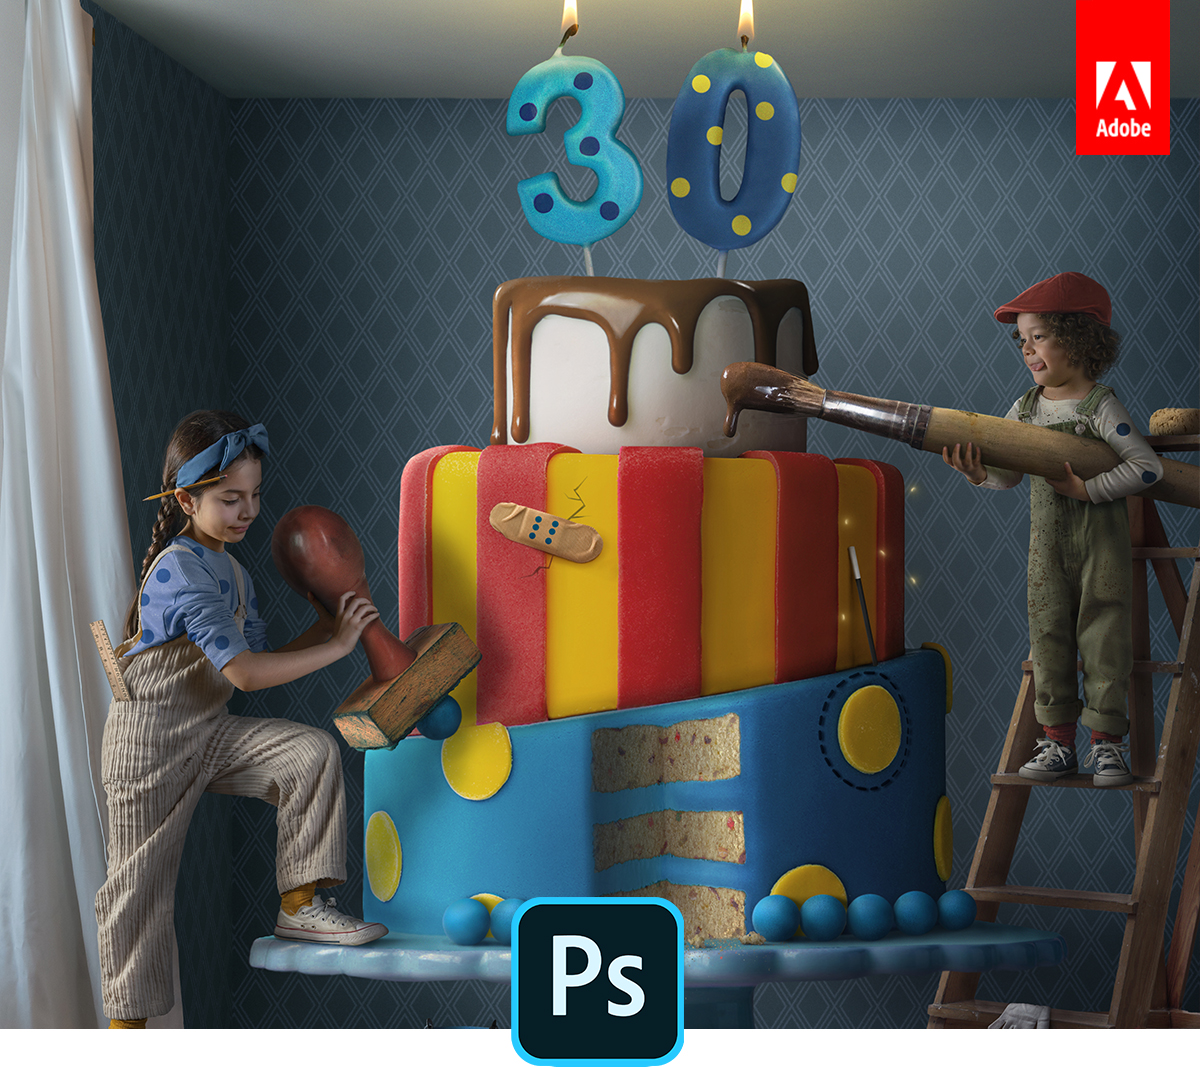 Photoshop turns 30; Adobe adds new features to celebrate